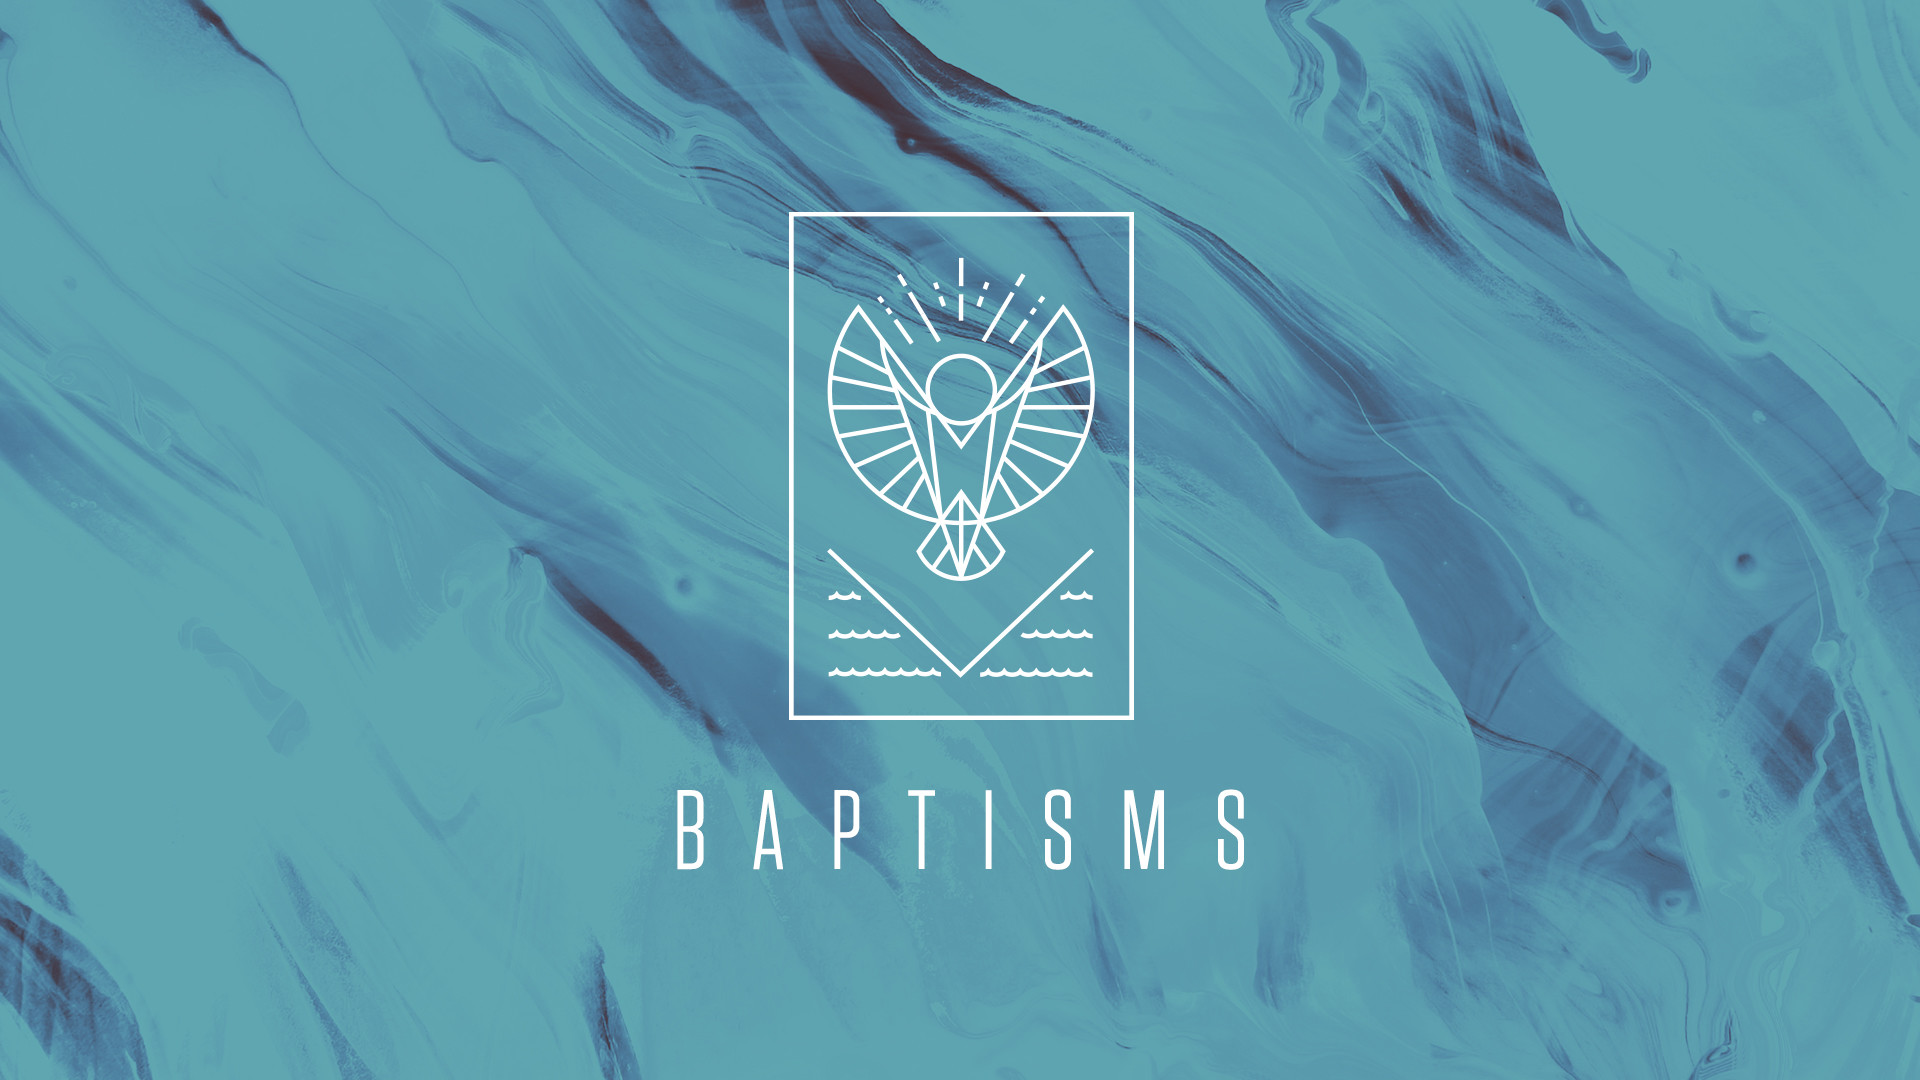 "<span style=""text-transform: uppercase; font-weight: bold; font-size: 11px;"">Want to be baptized? </span><span style=""font-size: 11px;""> - Next baptism Aug 13</span>"